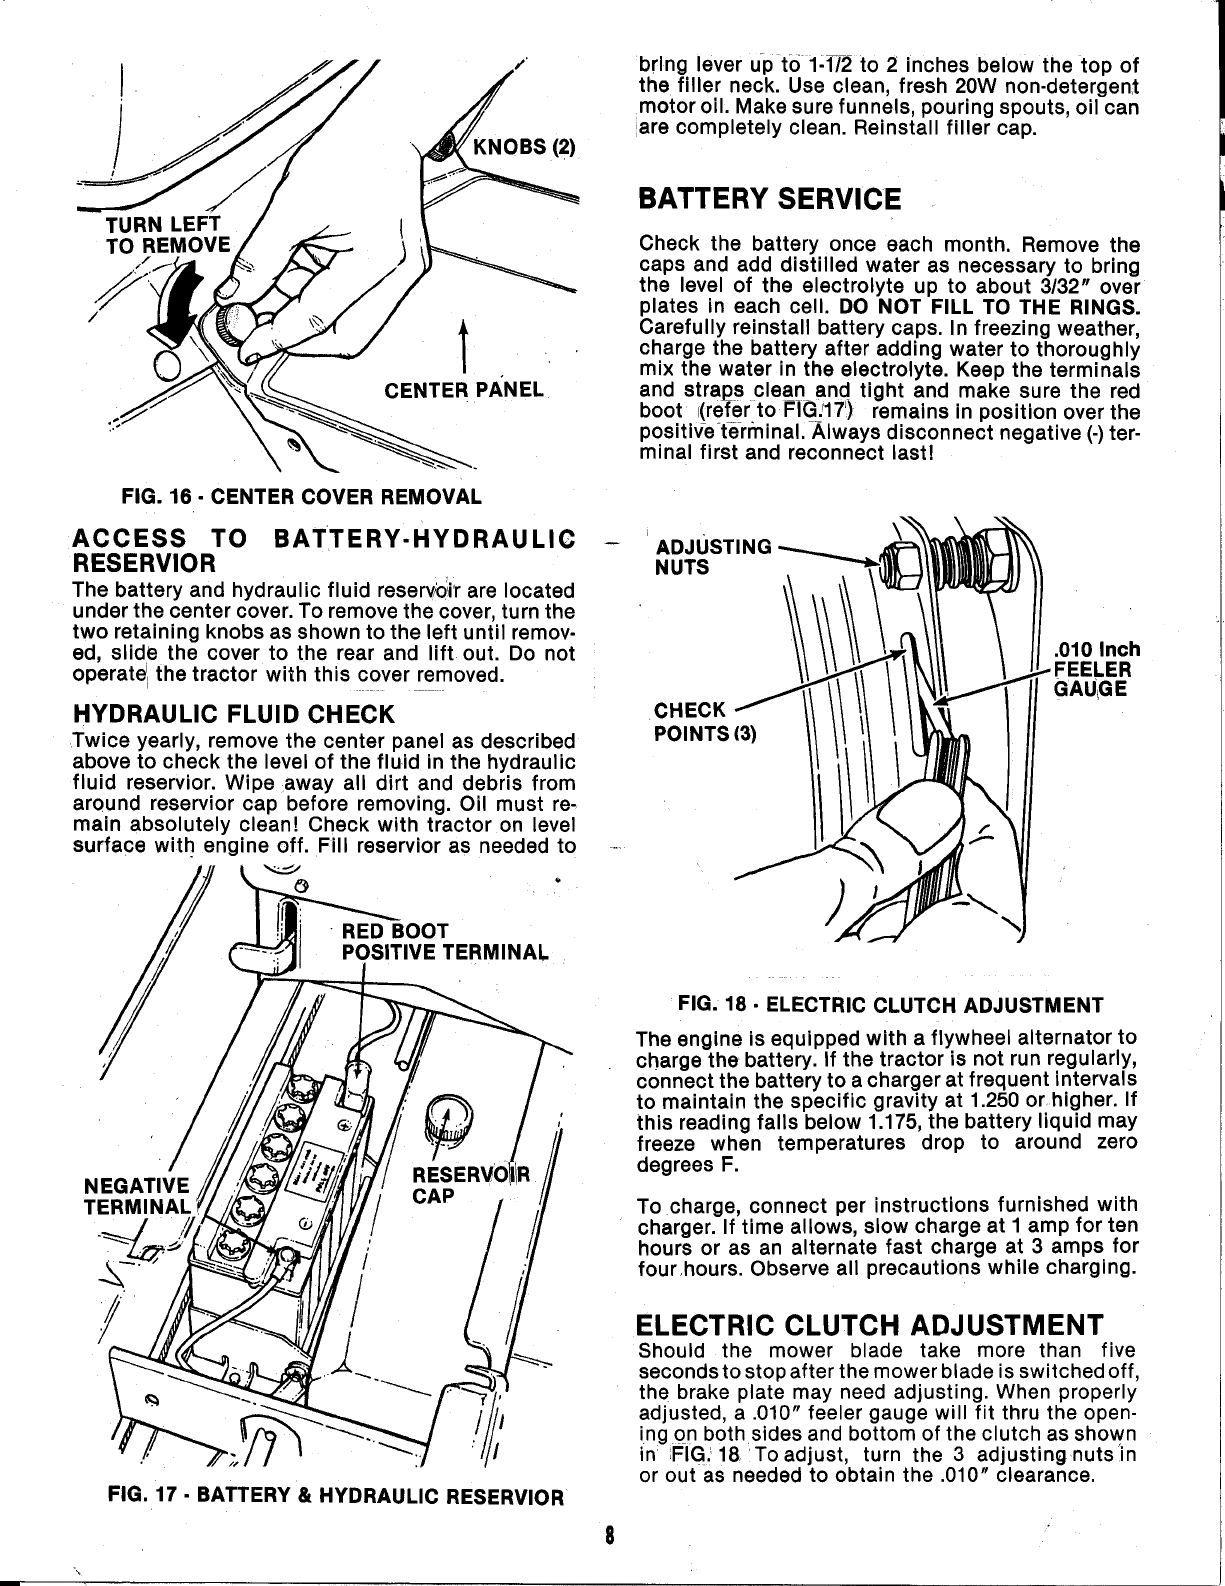 Clutch for user guide user manuals array page 8 of snapper lawn mower yt18h user guide manualsonline com rh lawnandgarden manualsonline fandeluxe Gallery